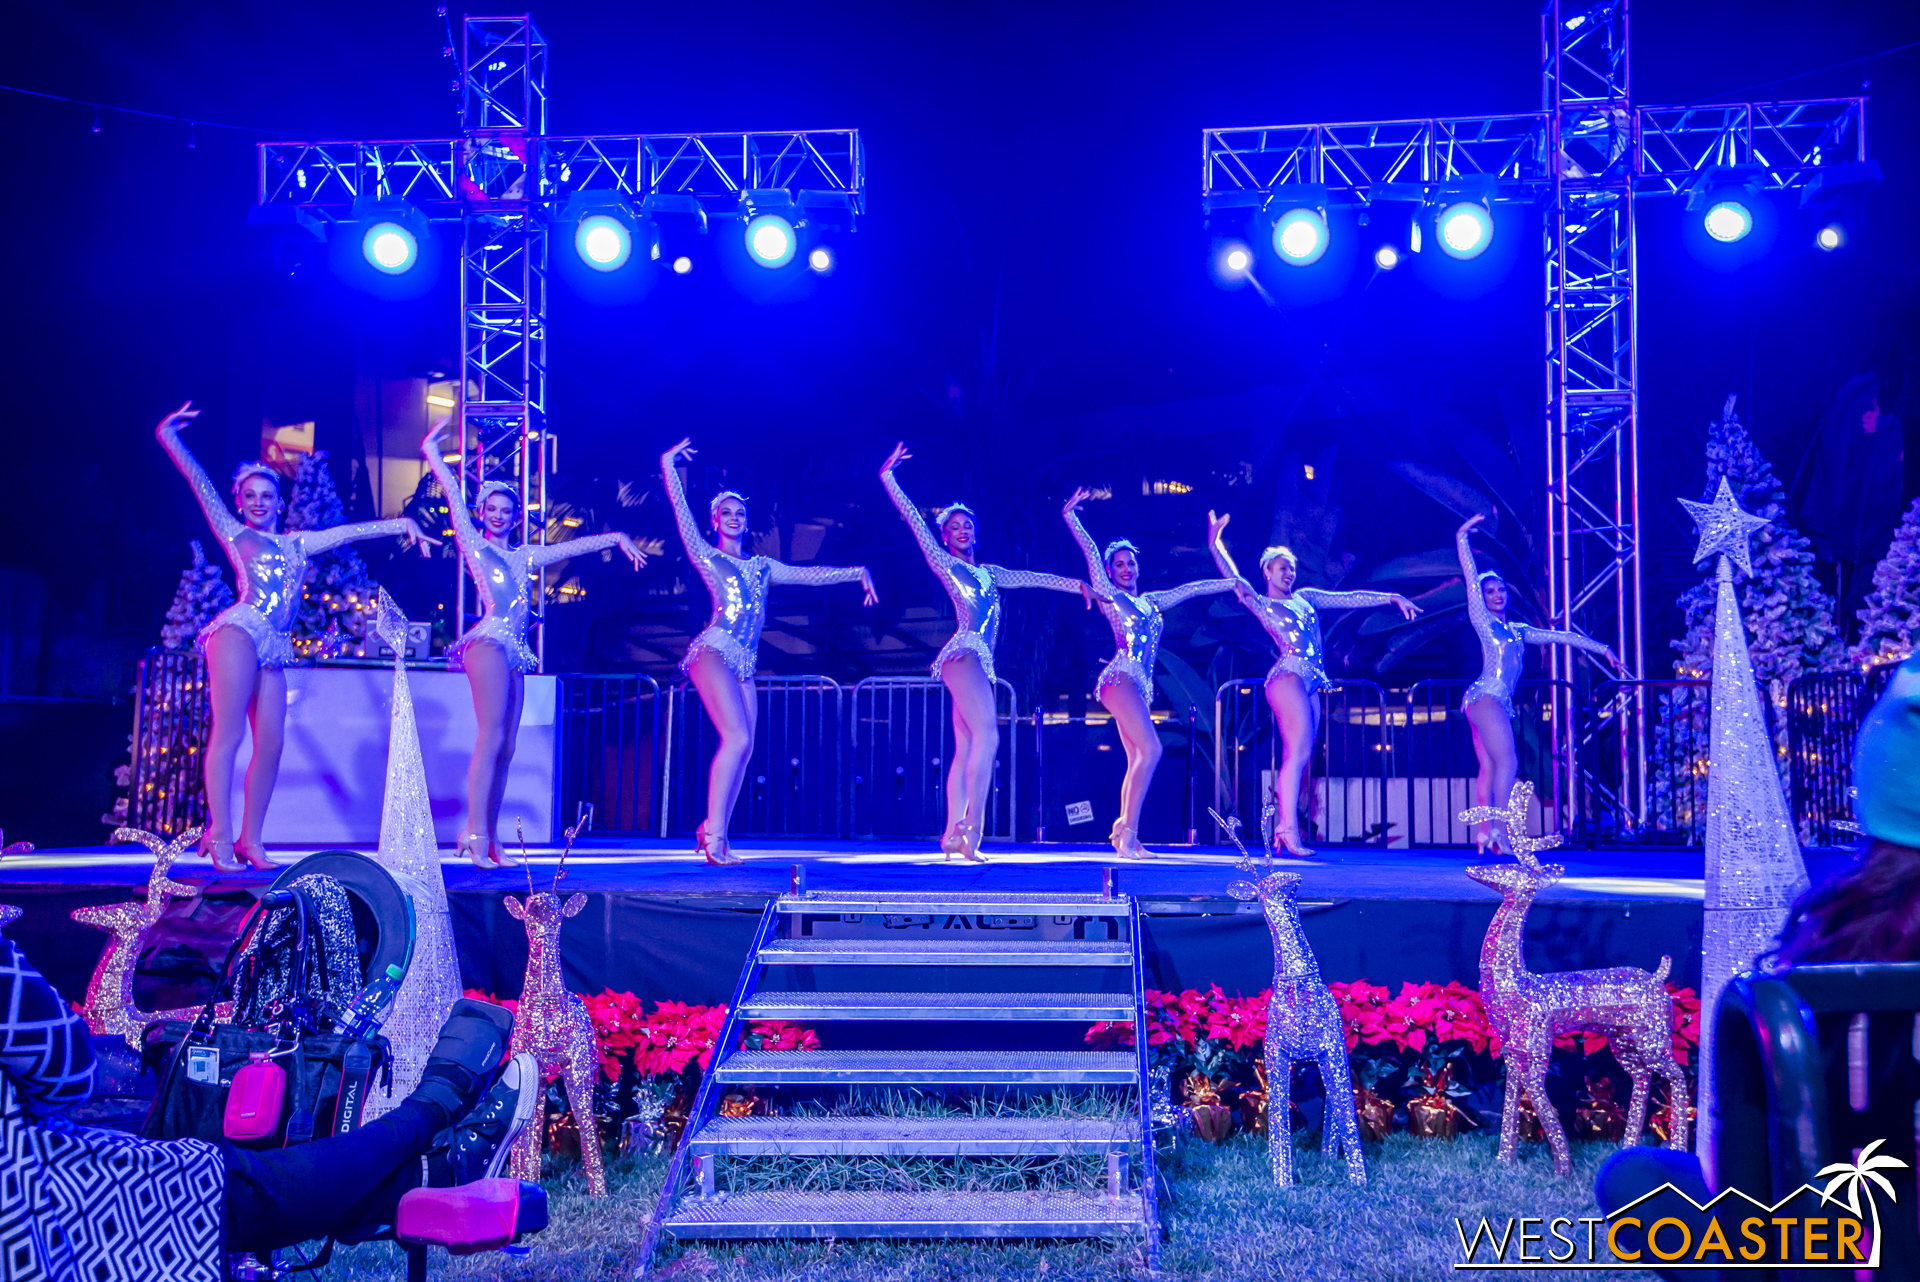 Shows (North Pole Main Stage) - 0003.jpg